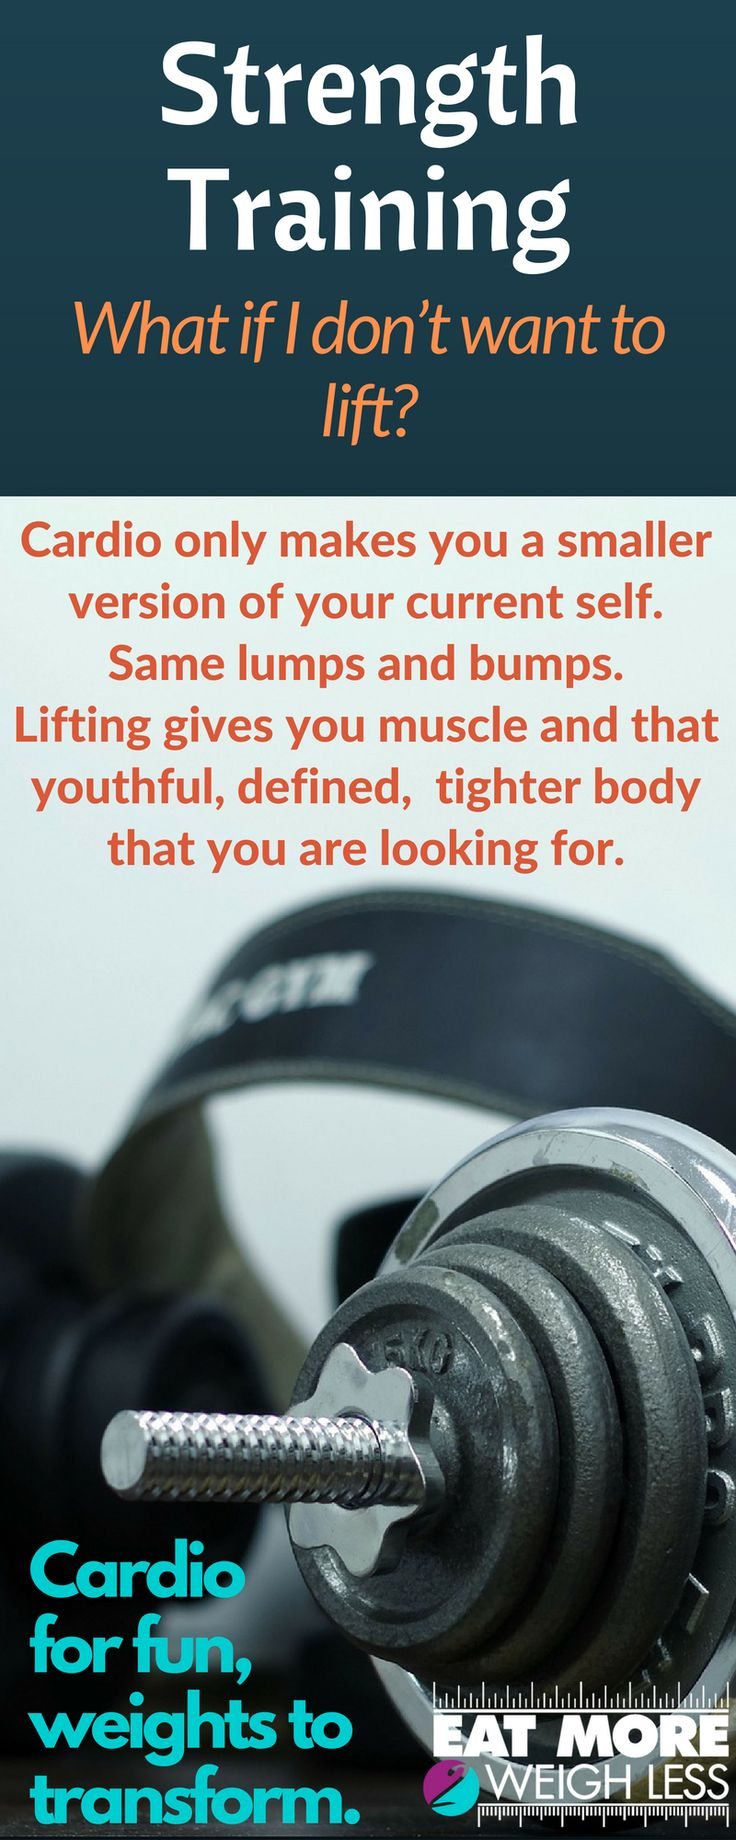 Are you in love with cardio but your body is not changing how you expected? Cardio for fun, weights to transform. It's time to give lifting as try! Lifting will not only keep that youthful tightness of the body, but also allow you to hit your goal WITHOUT having to lose so much weight. Visit for full article. #em2wl #metabolismreset #strengthtraining